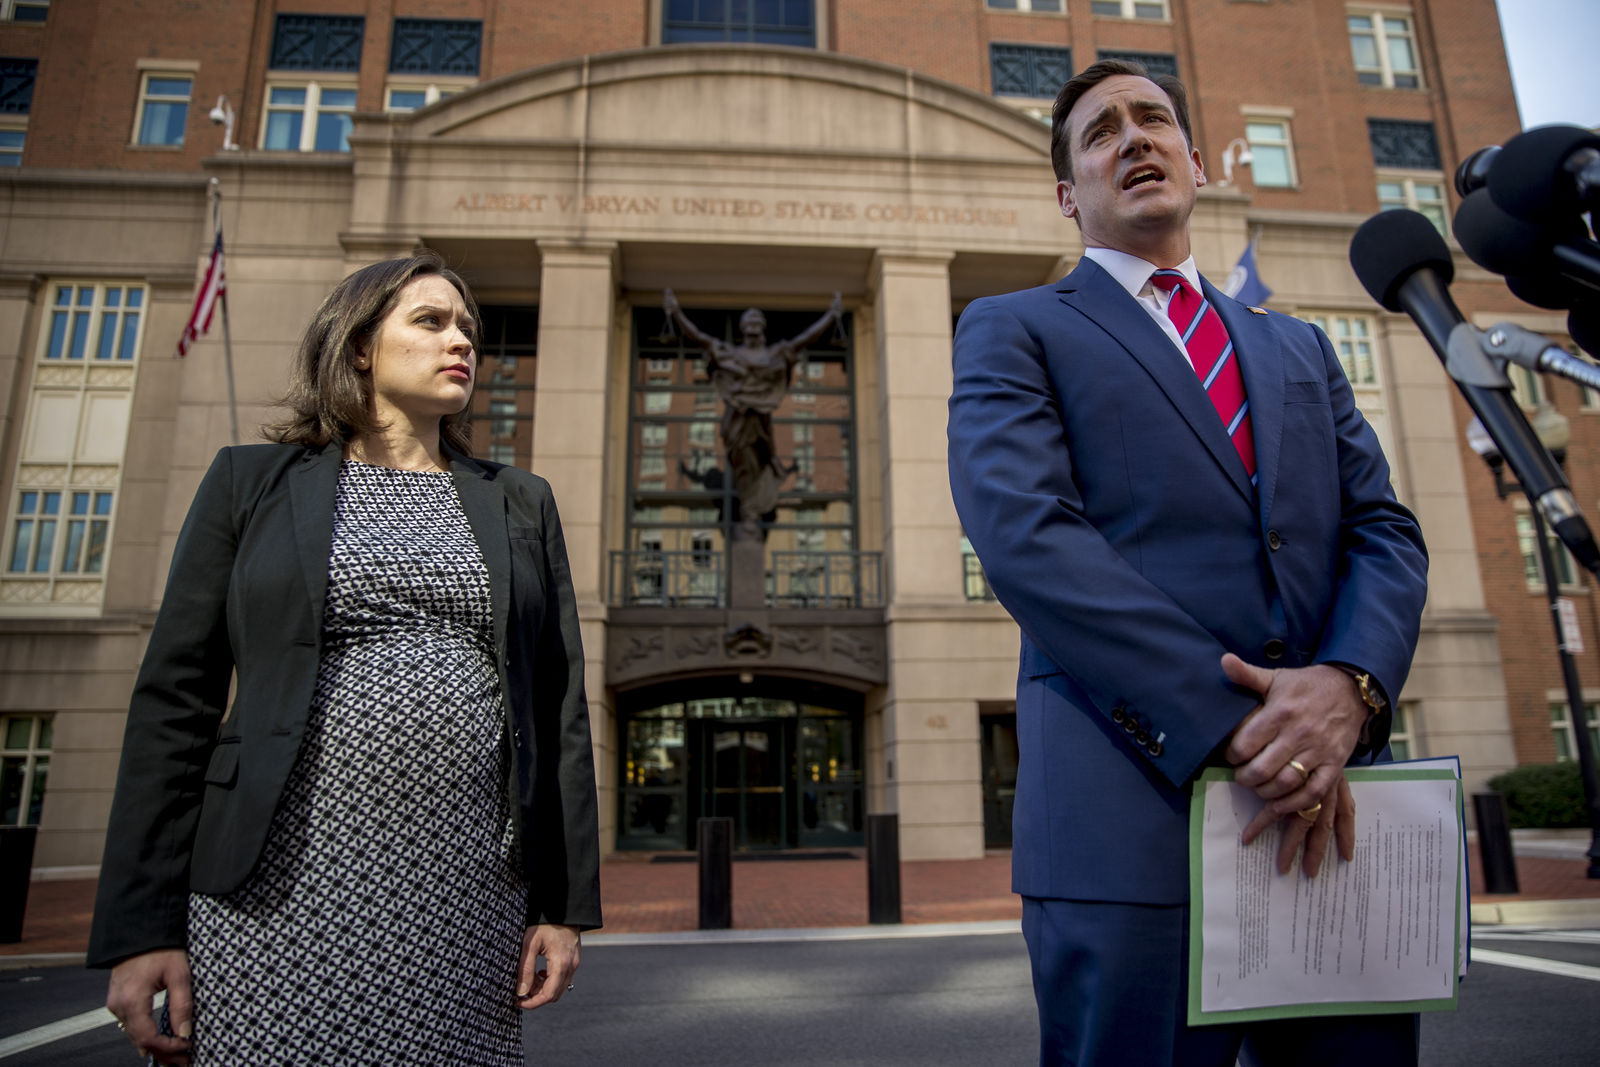 Attorney General for the Eastern District of Virginia G. Zachary Terwilliger, right, accompanied by Assistant United States Attorney Danya Atiyeh, left, takes a question from a reporter after announcing the arrest of Henry Kyle Frese, a Defense Intelligence Agency official in Alexandria, Va., Wednesday, Oct. 9, 2019. (AP Photo/Andrew Harnik)